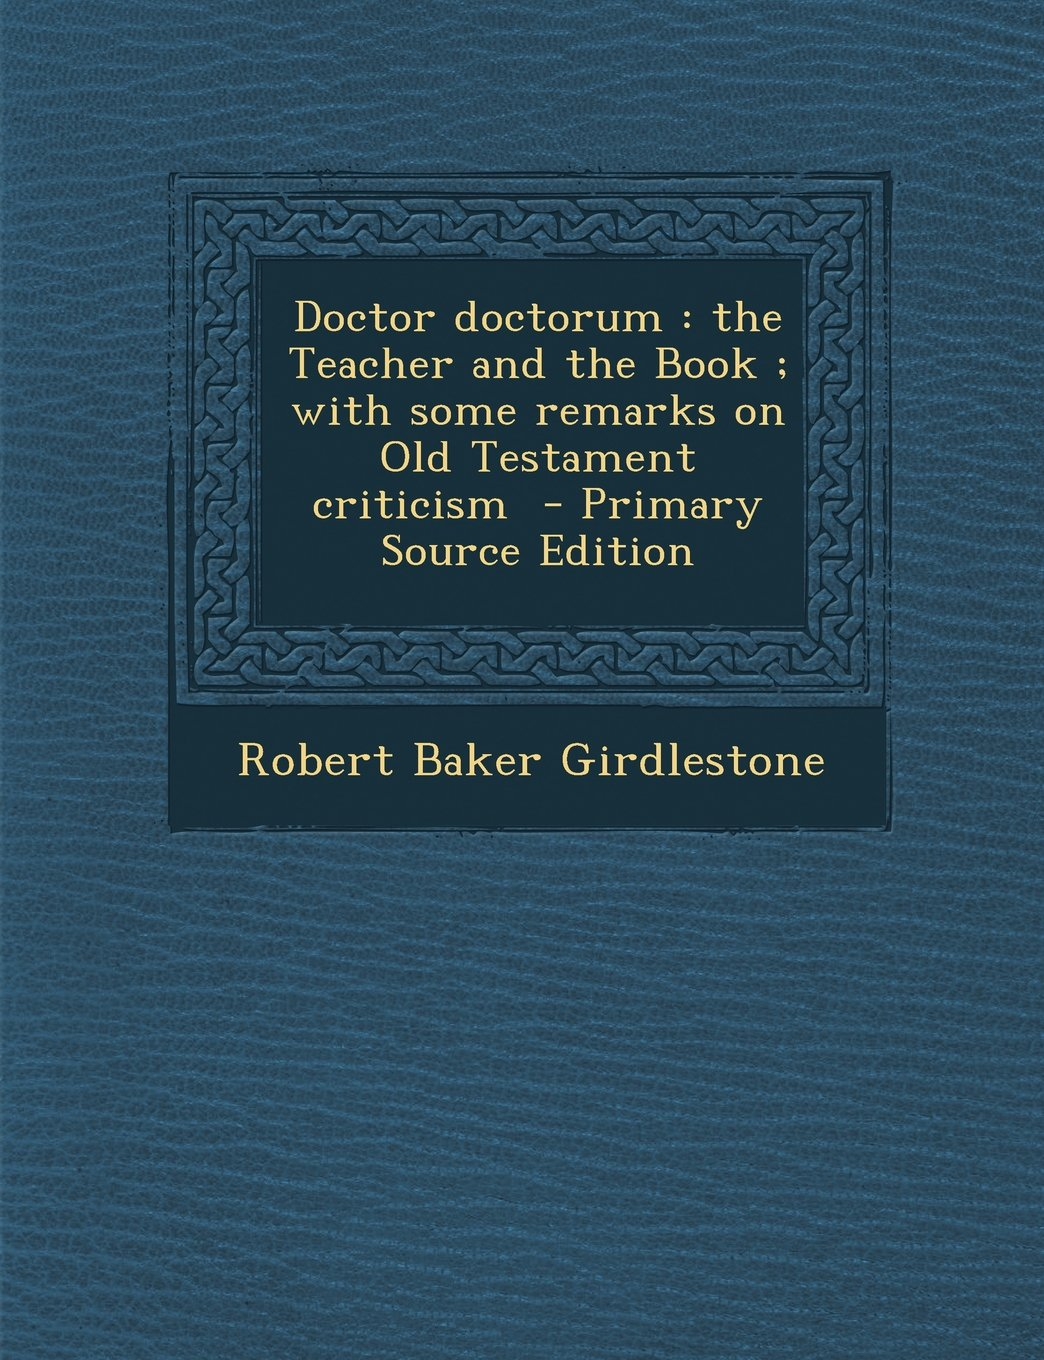 Doctor Doctorum: The Teacher and the Book